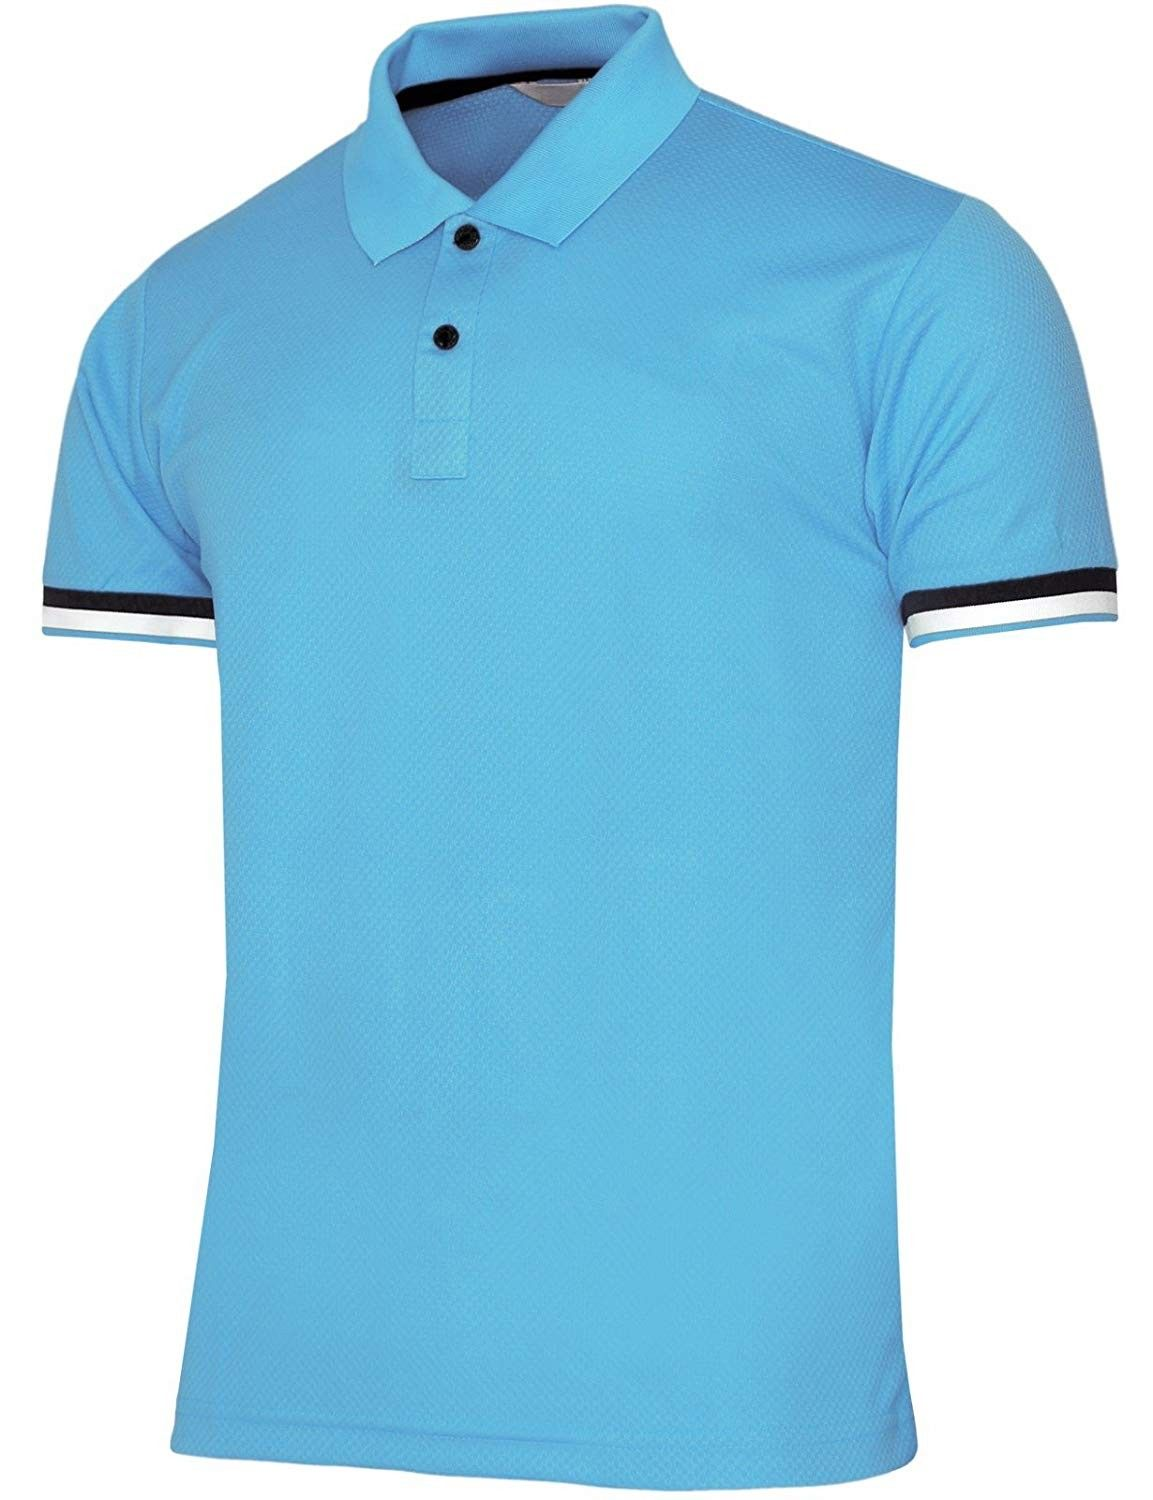 Men's Short Sleeve Casual Polo Shirts Dri Fit 2 Button